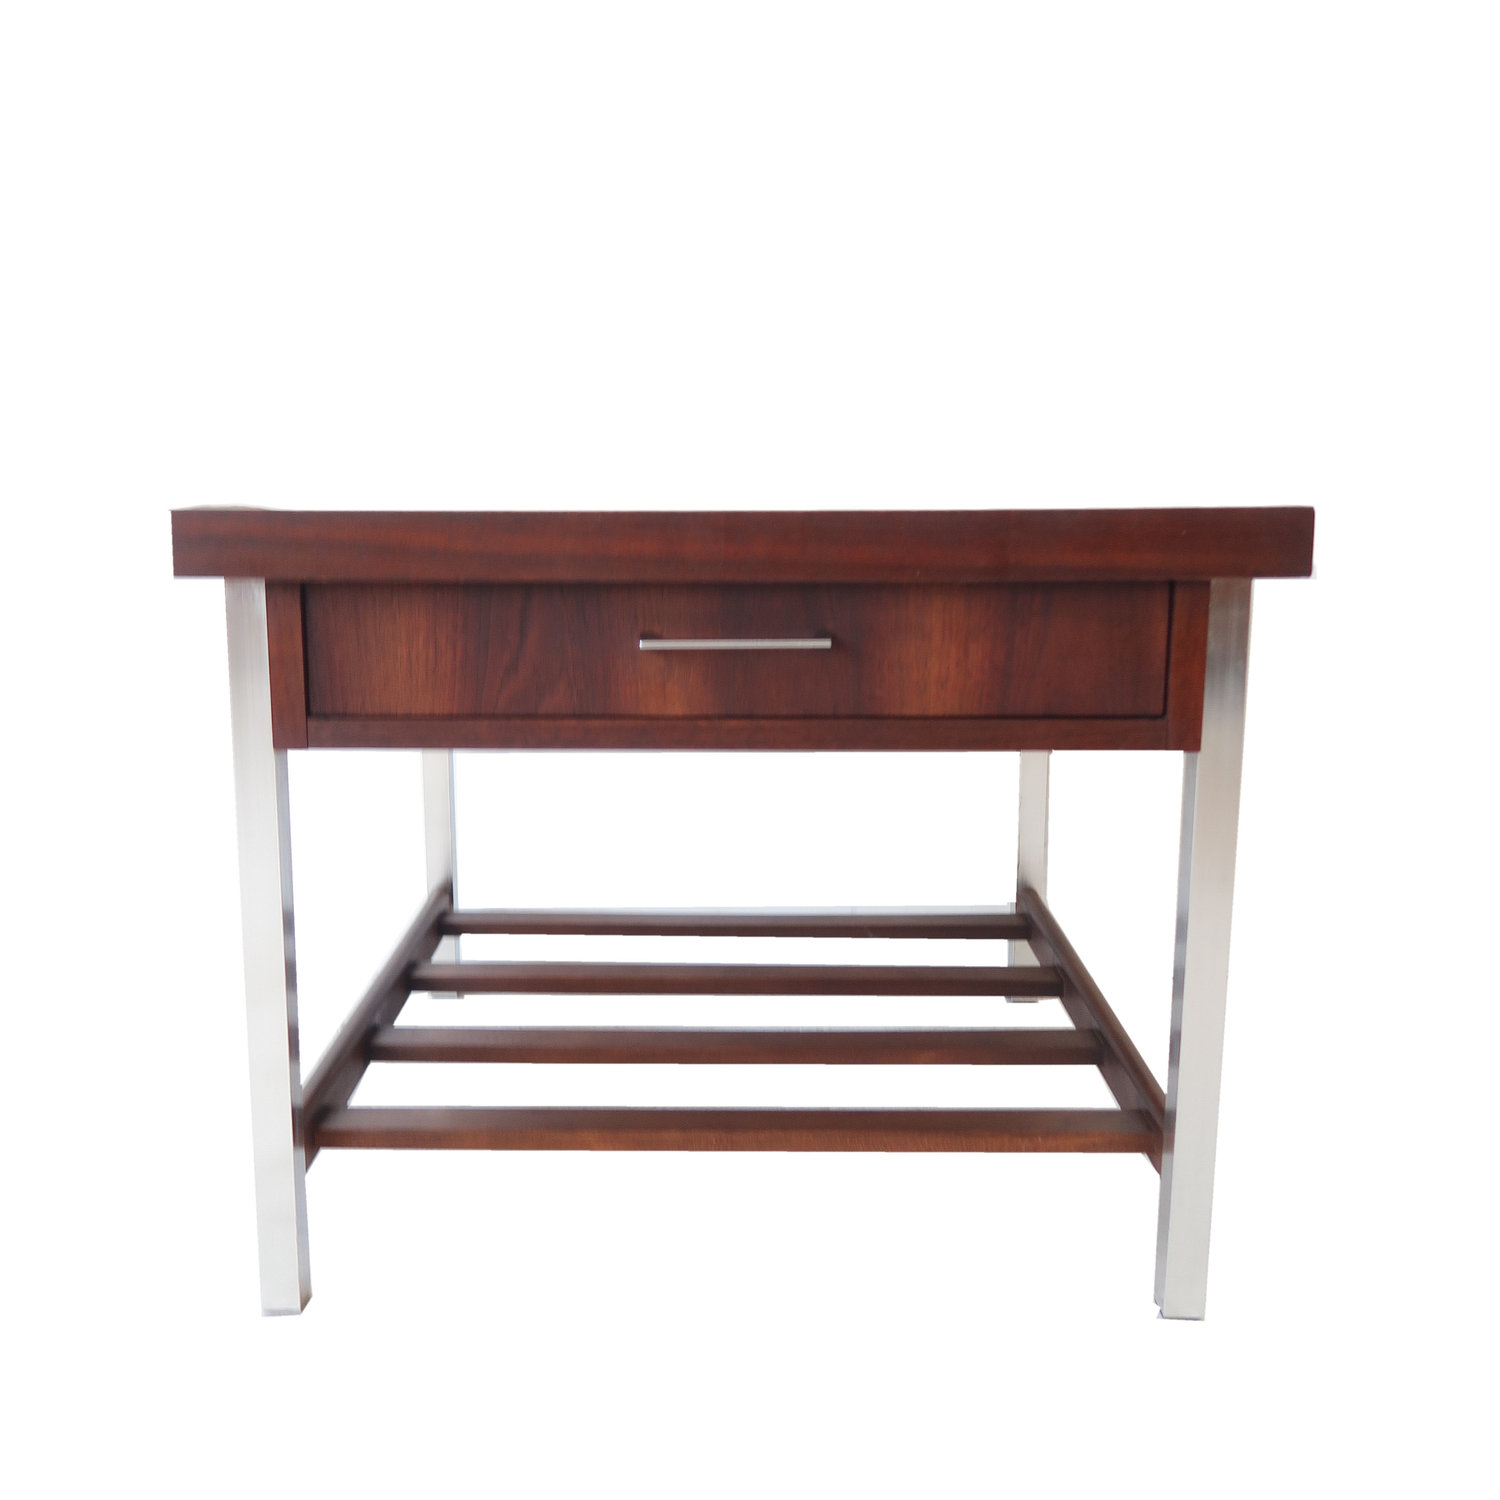 At 1st Sight Products Vintage Mid Century Modern End Table With